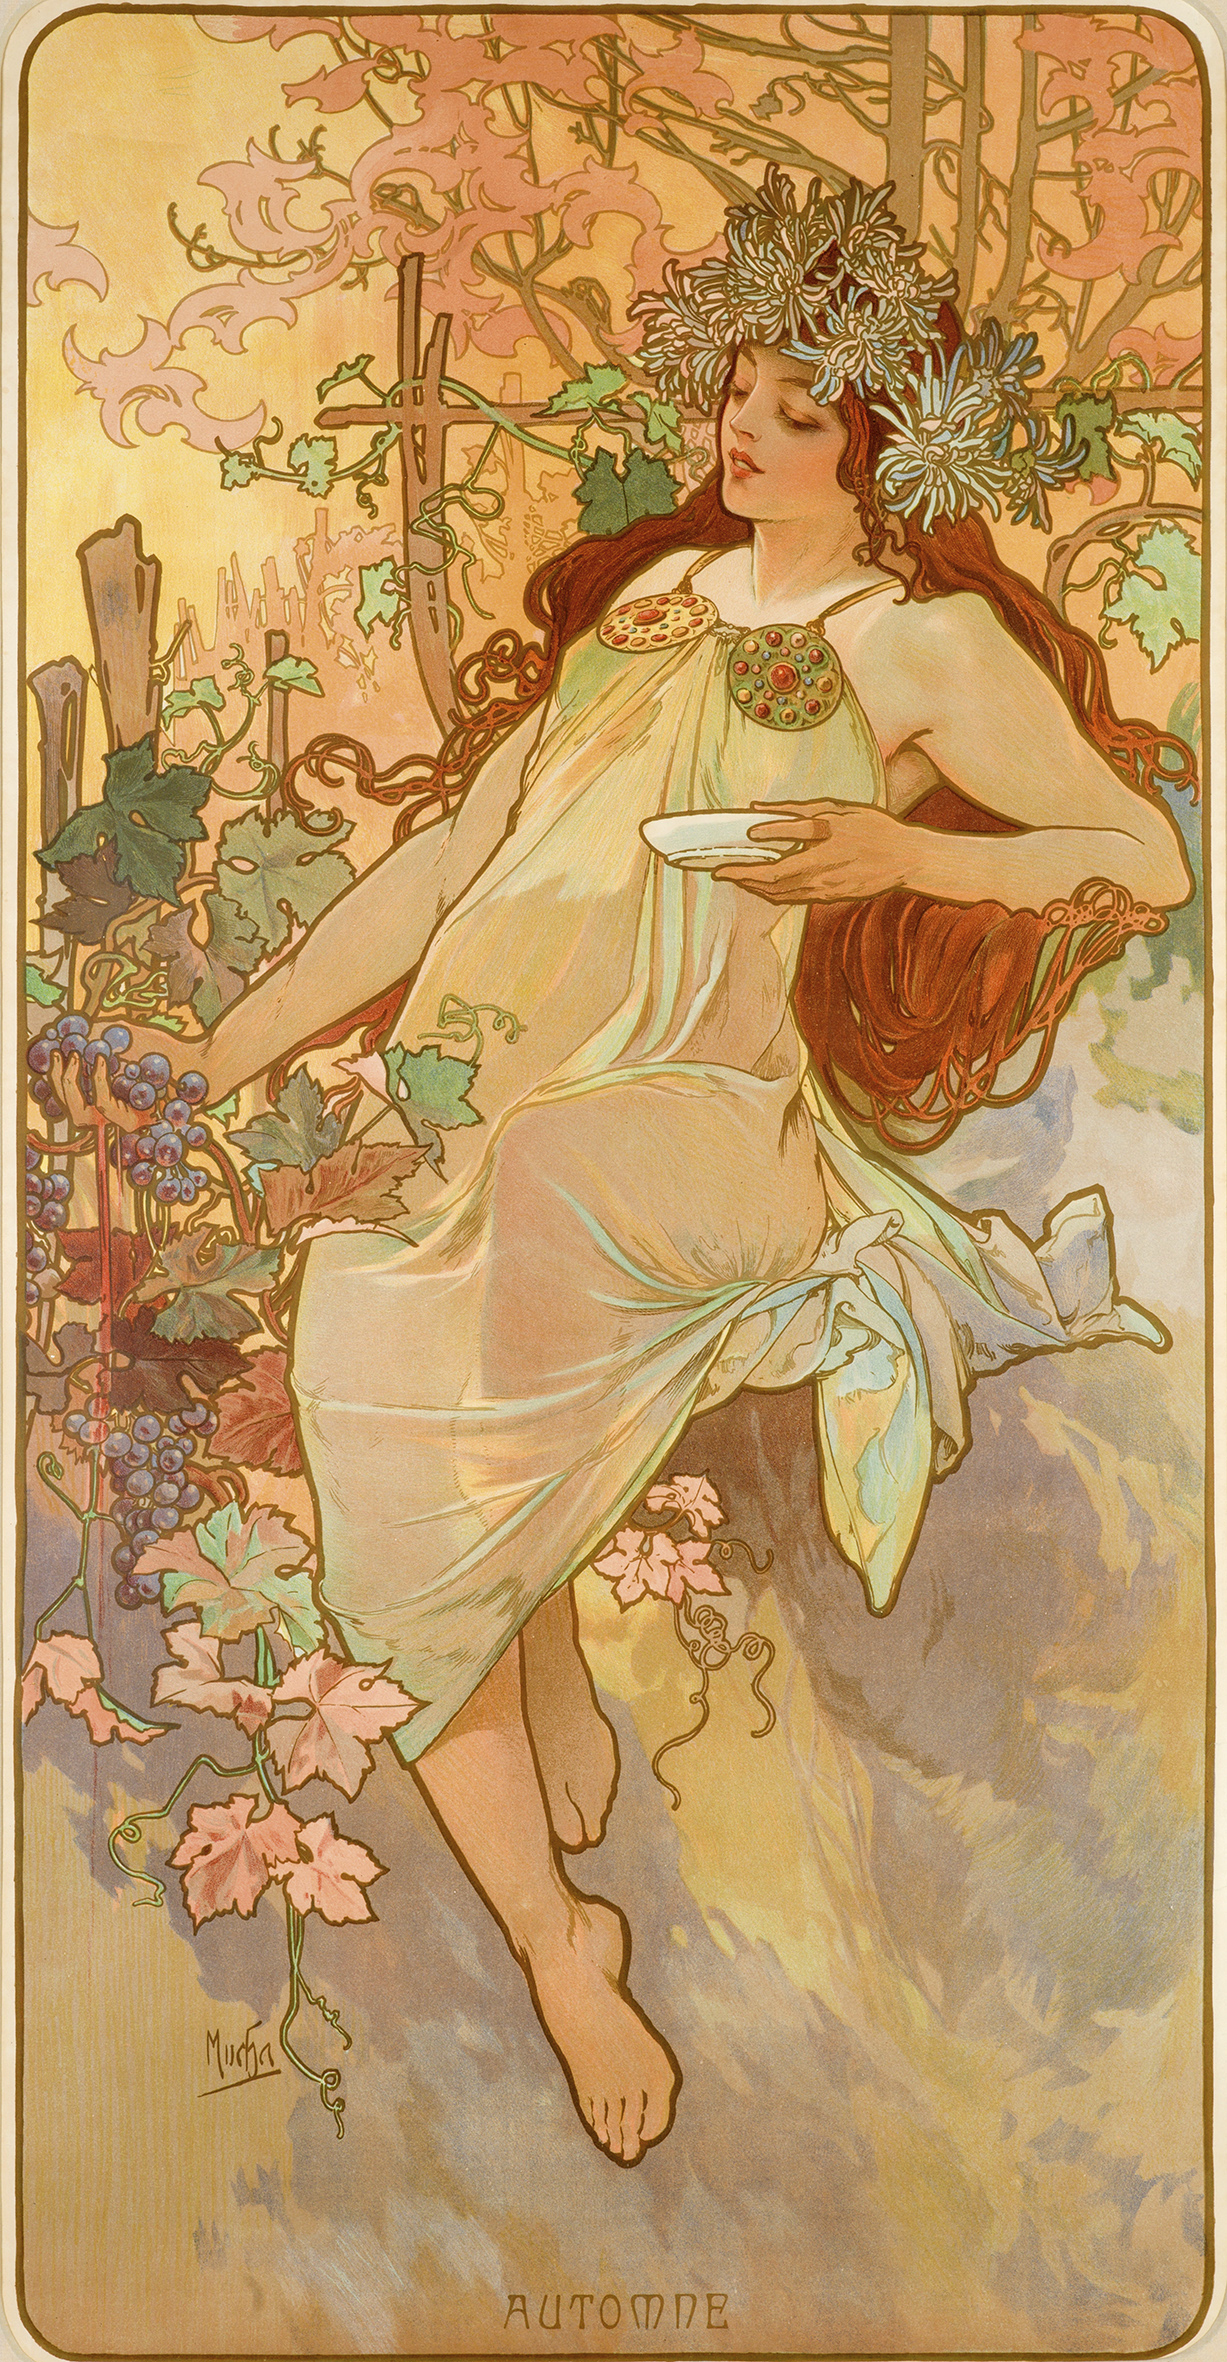 illustrational poster of a woman holding a dish sitting amongst flowers